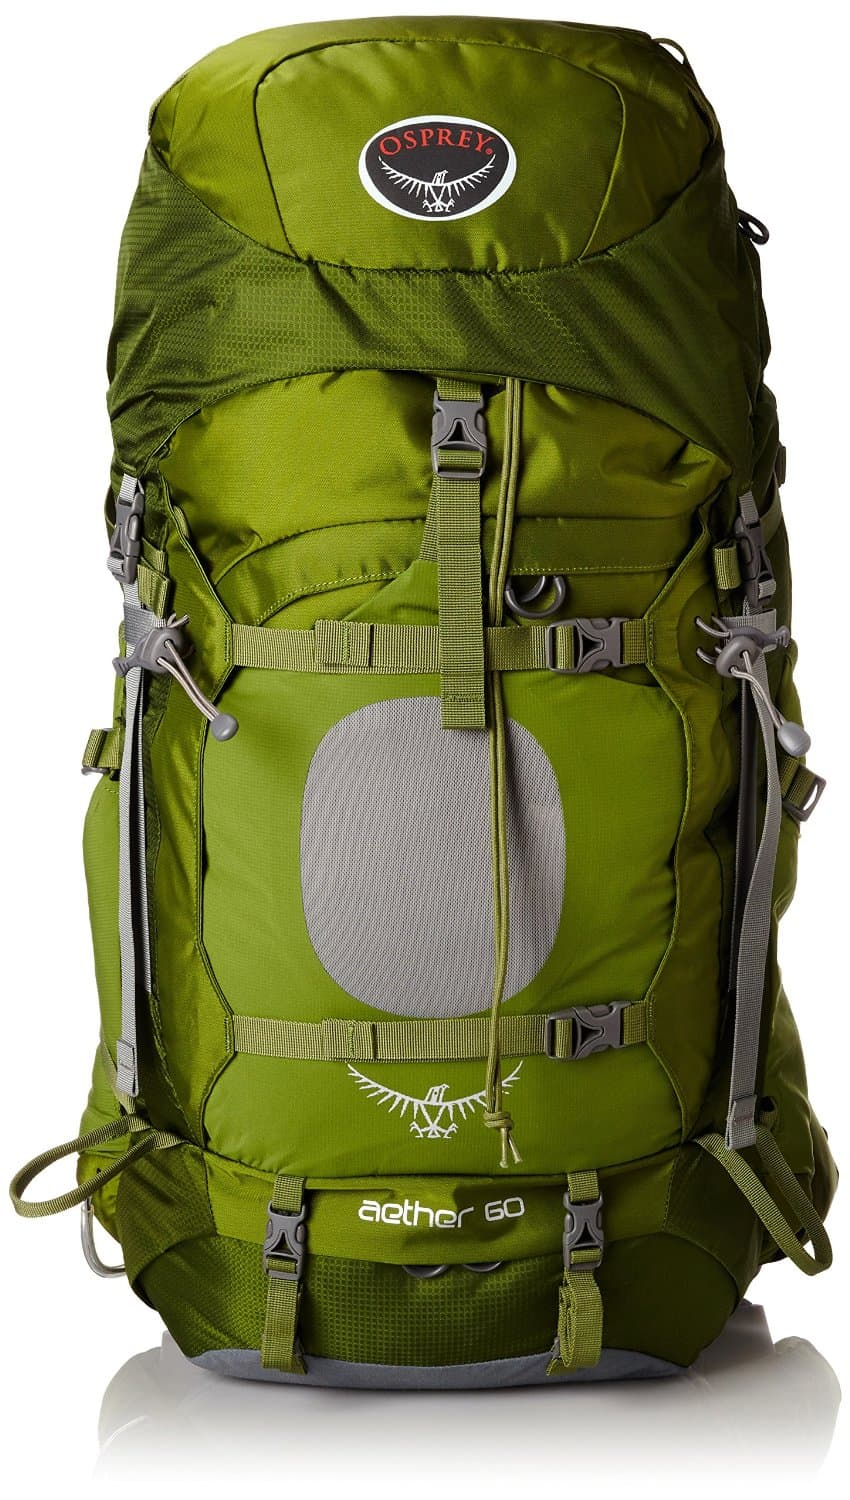 Osprey - Aether 60 Pack